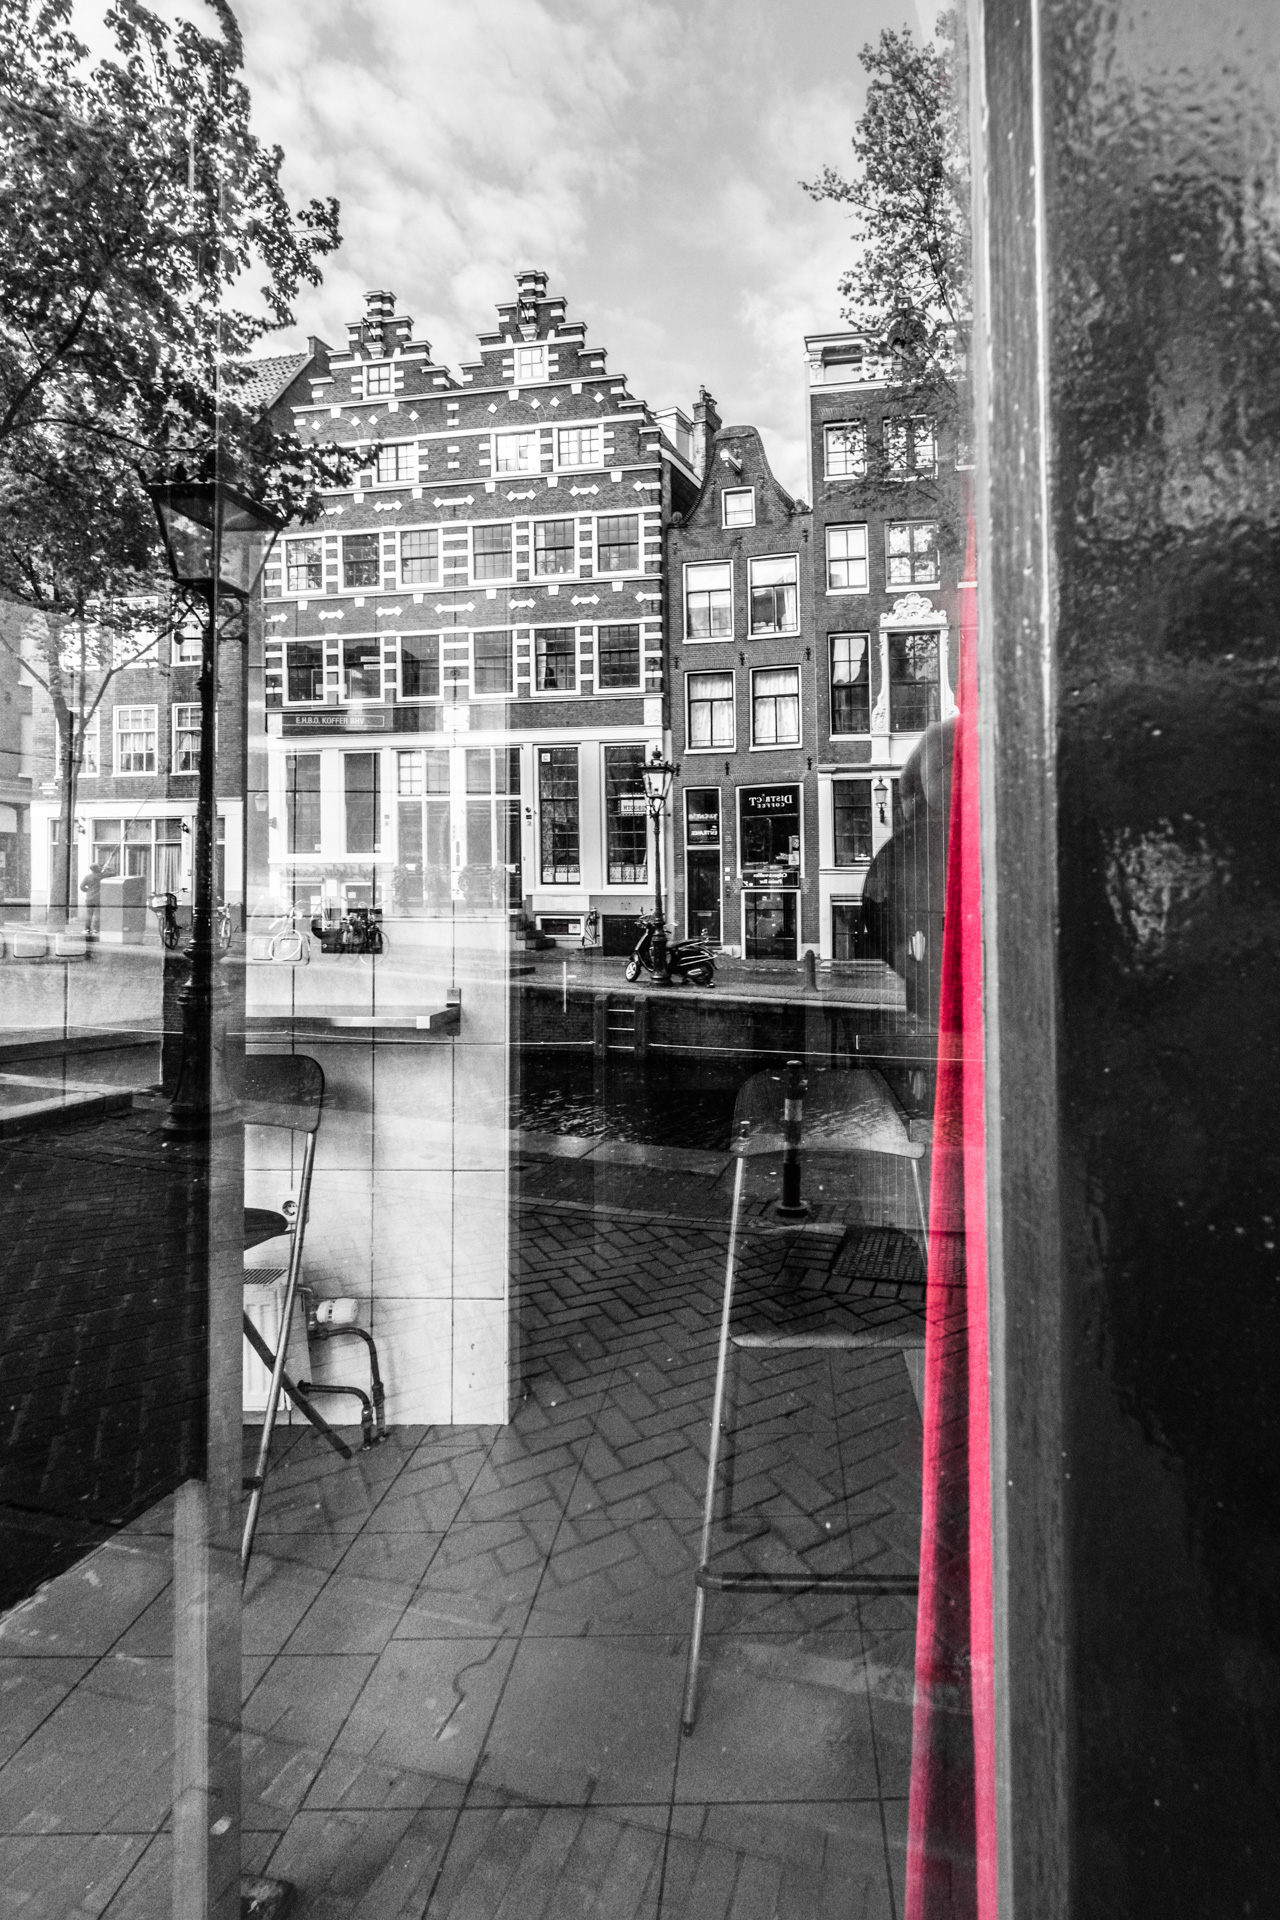 Red light district, room, corona ,covıd_19 ,notourists ,amsterdam ,centraalstation ,staysafe ,bizar ,stillestratenvanamsterdam ,straatfotografie ,EbbesFotografie ,amsterdammer ,emptystreets ,streetphotography ,netherlands ,holland ,photography ,travelphotography ,amsterdamcity ,photooftheday ,instagood ,wanderlust ,love ,travelgram ,summer ,picoftheday ,amsterdamworld ,holanda ,ContactBeforeUse